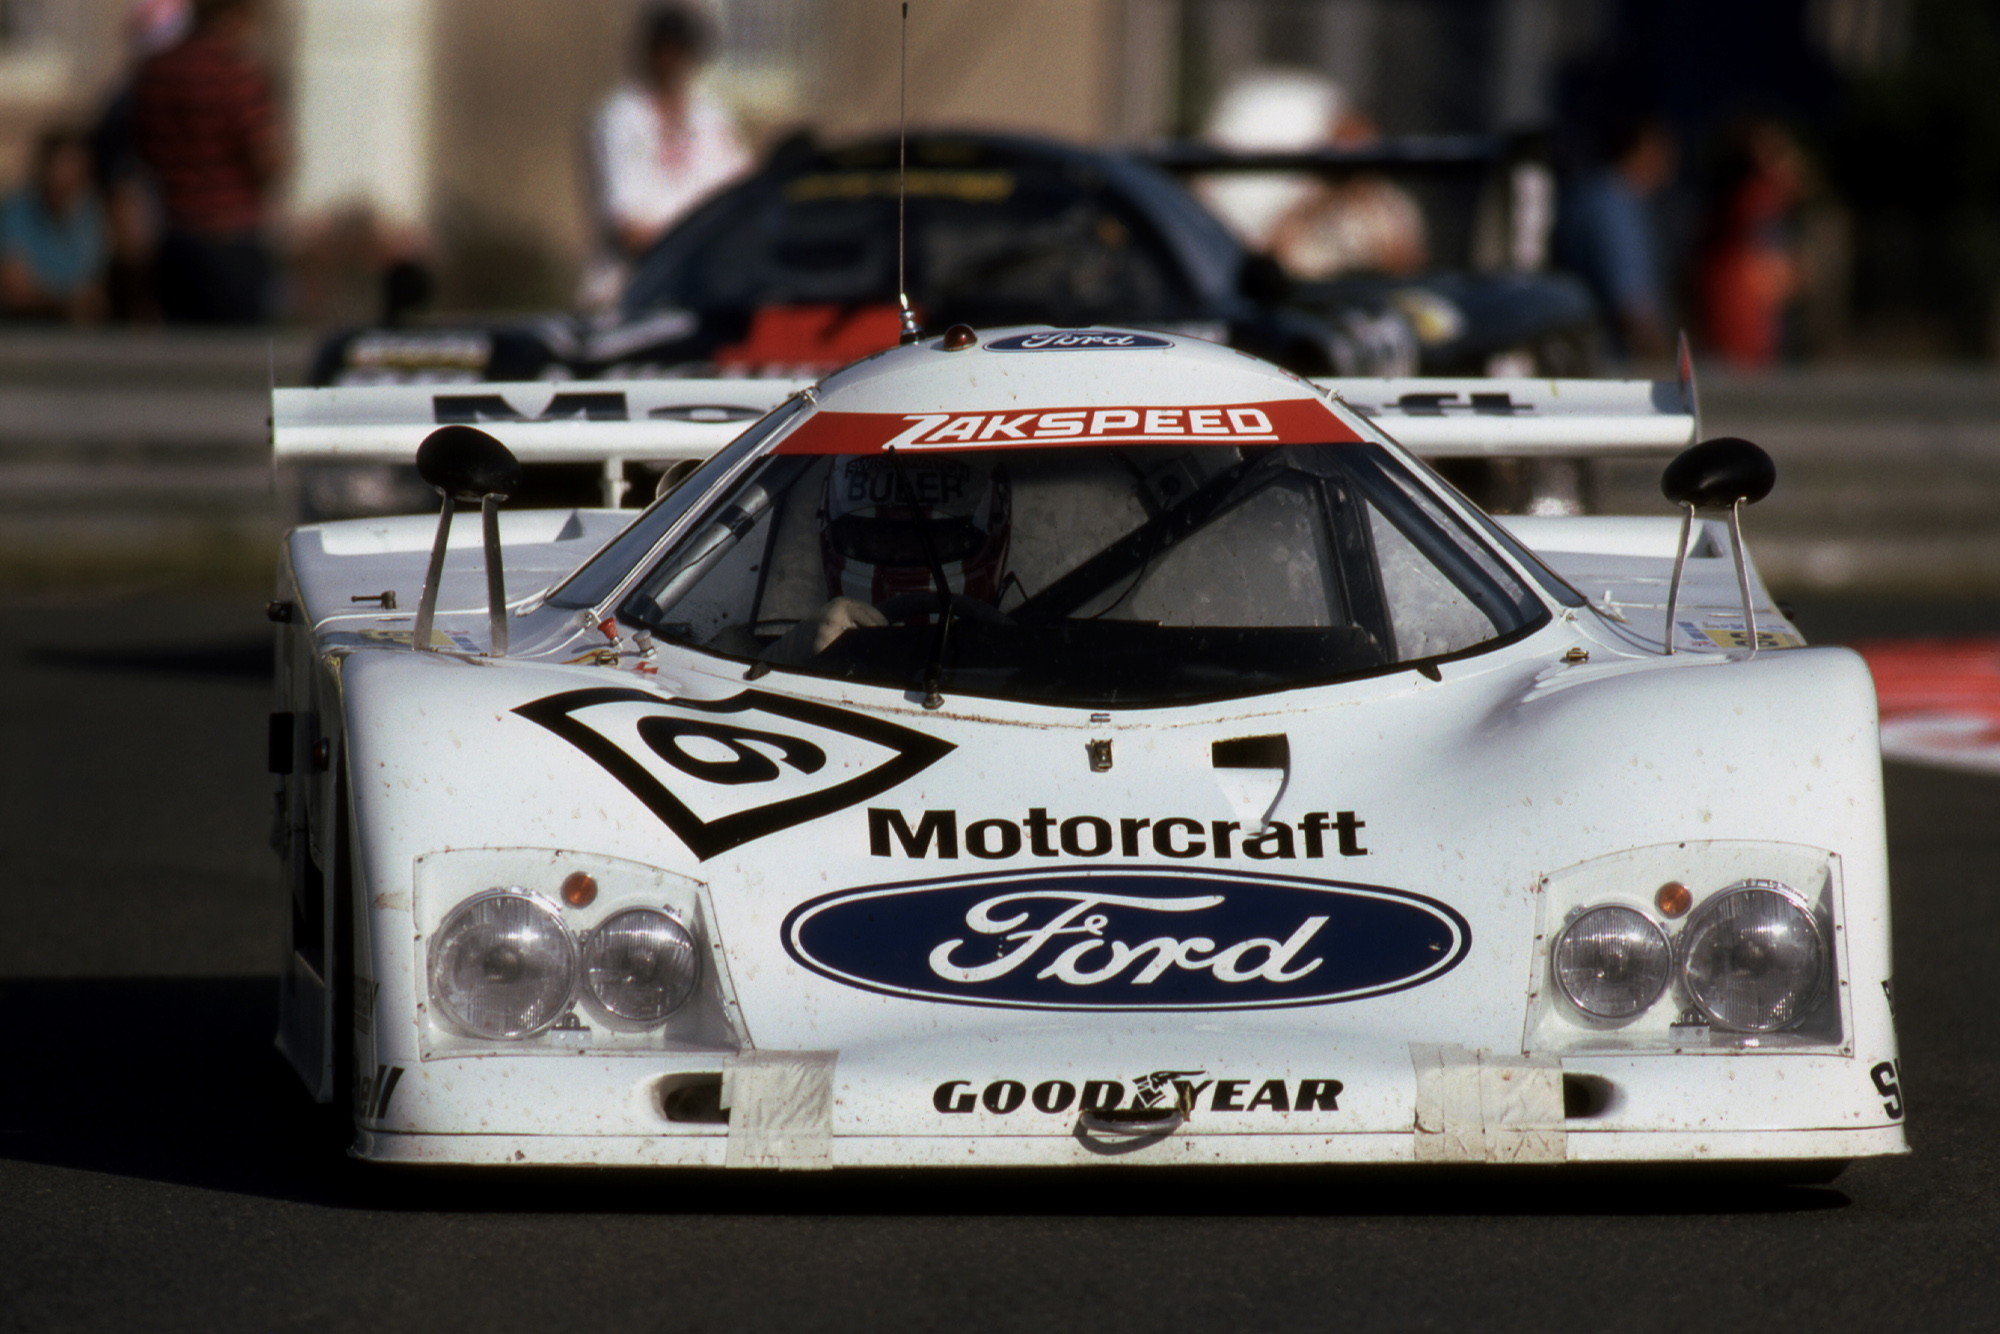 Ford C100 during the 1982 Le Mans 24 Hours